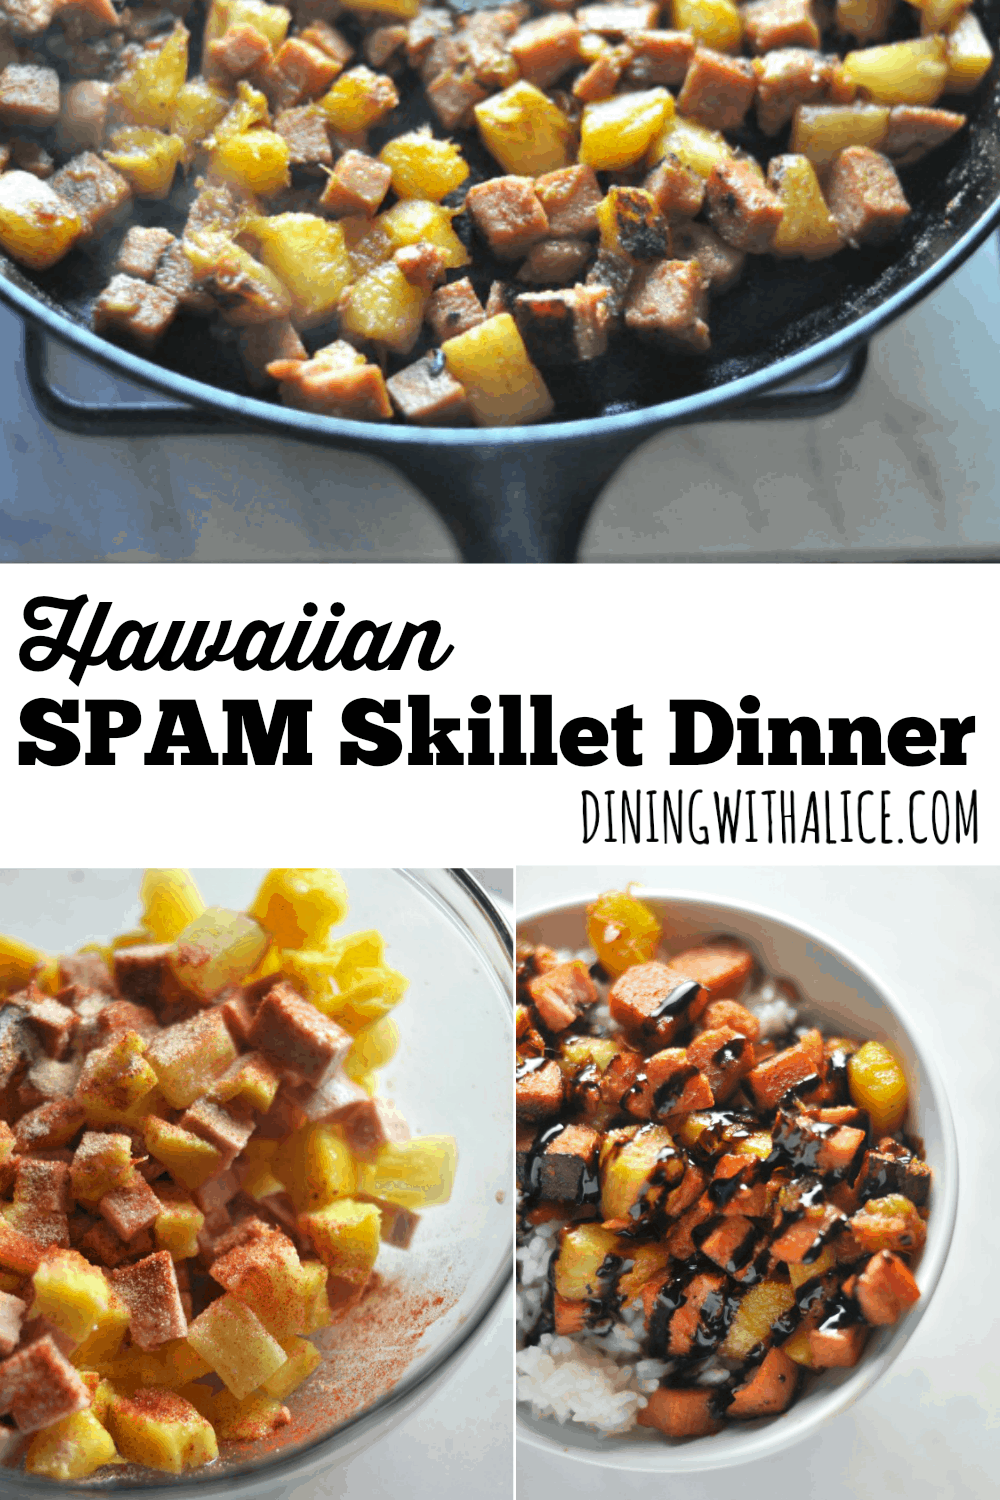 Hawaiian SPAM Skillet Dinner is an easy weeknight meal made with seasoned Pineapple and Mango. http://diningwithalice.com/weeknight-meals/hawaiian-spam-skillet-dinner/